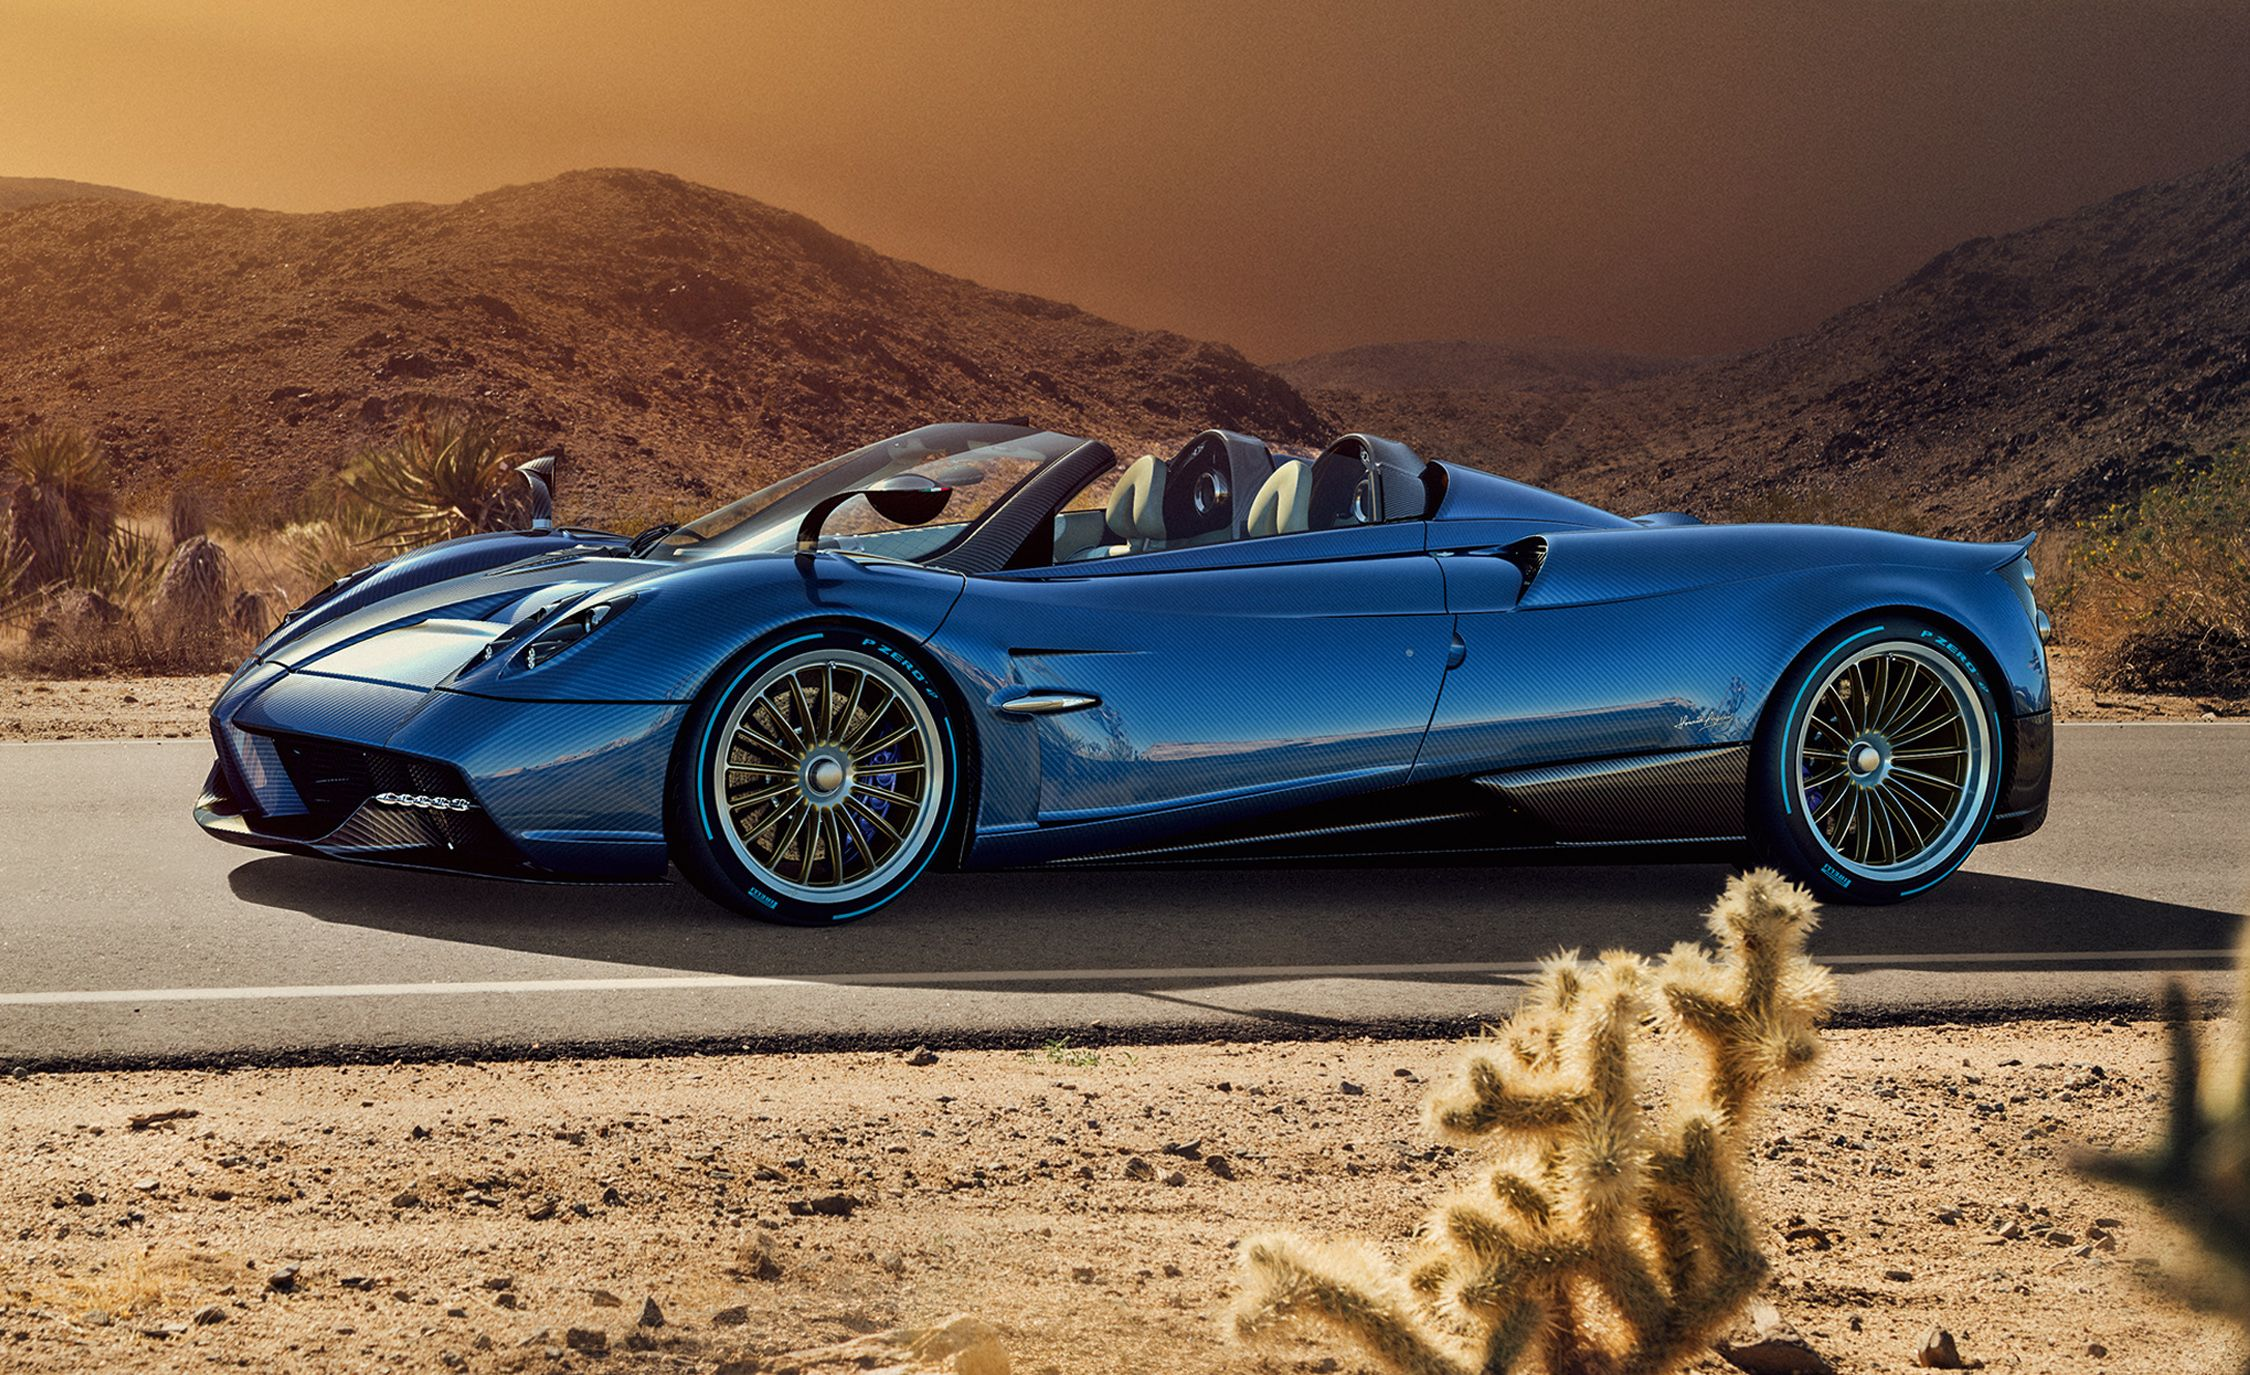 2017 Pagani Huayra Roadster A Born Again Supercar